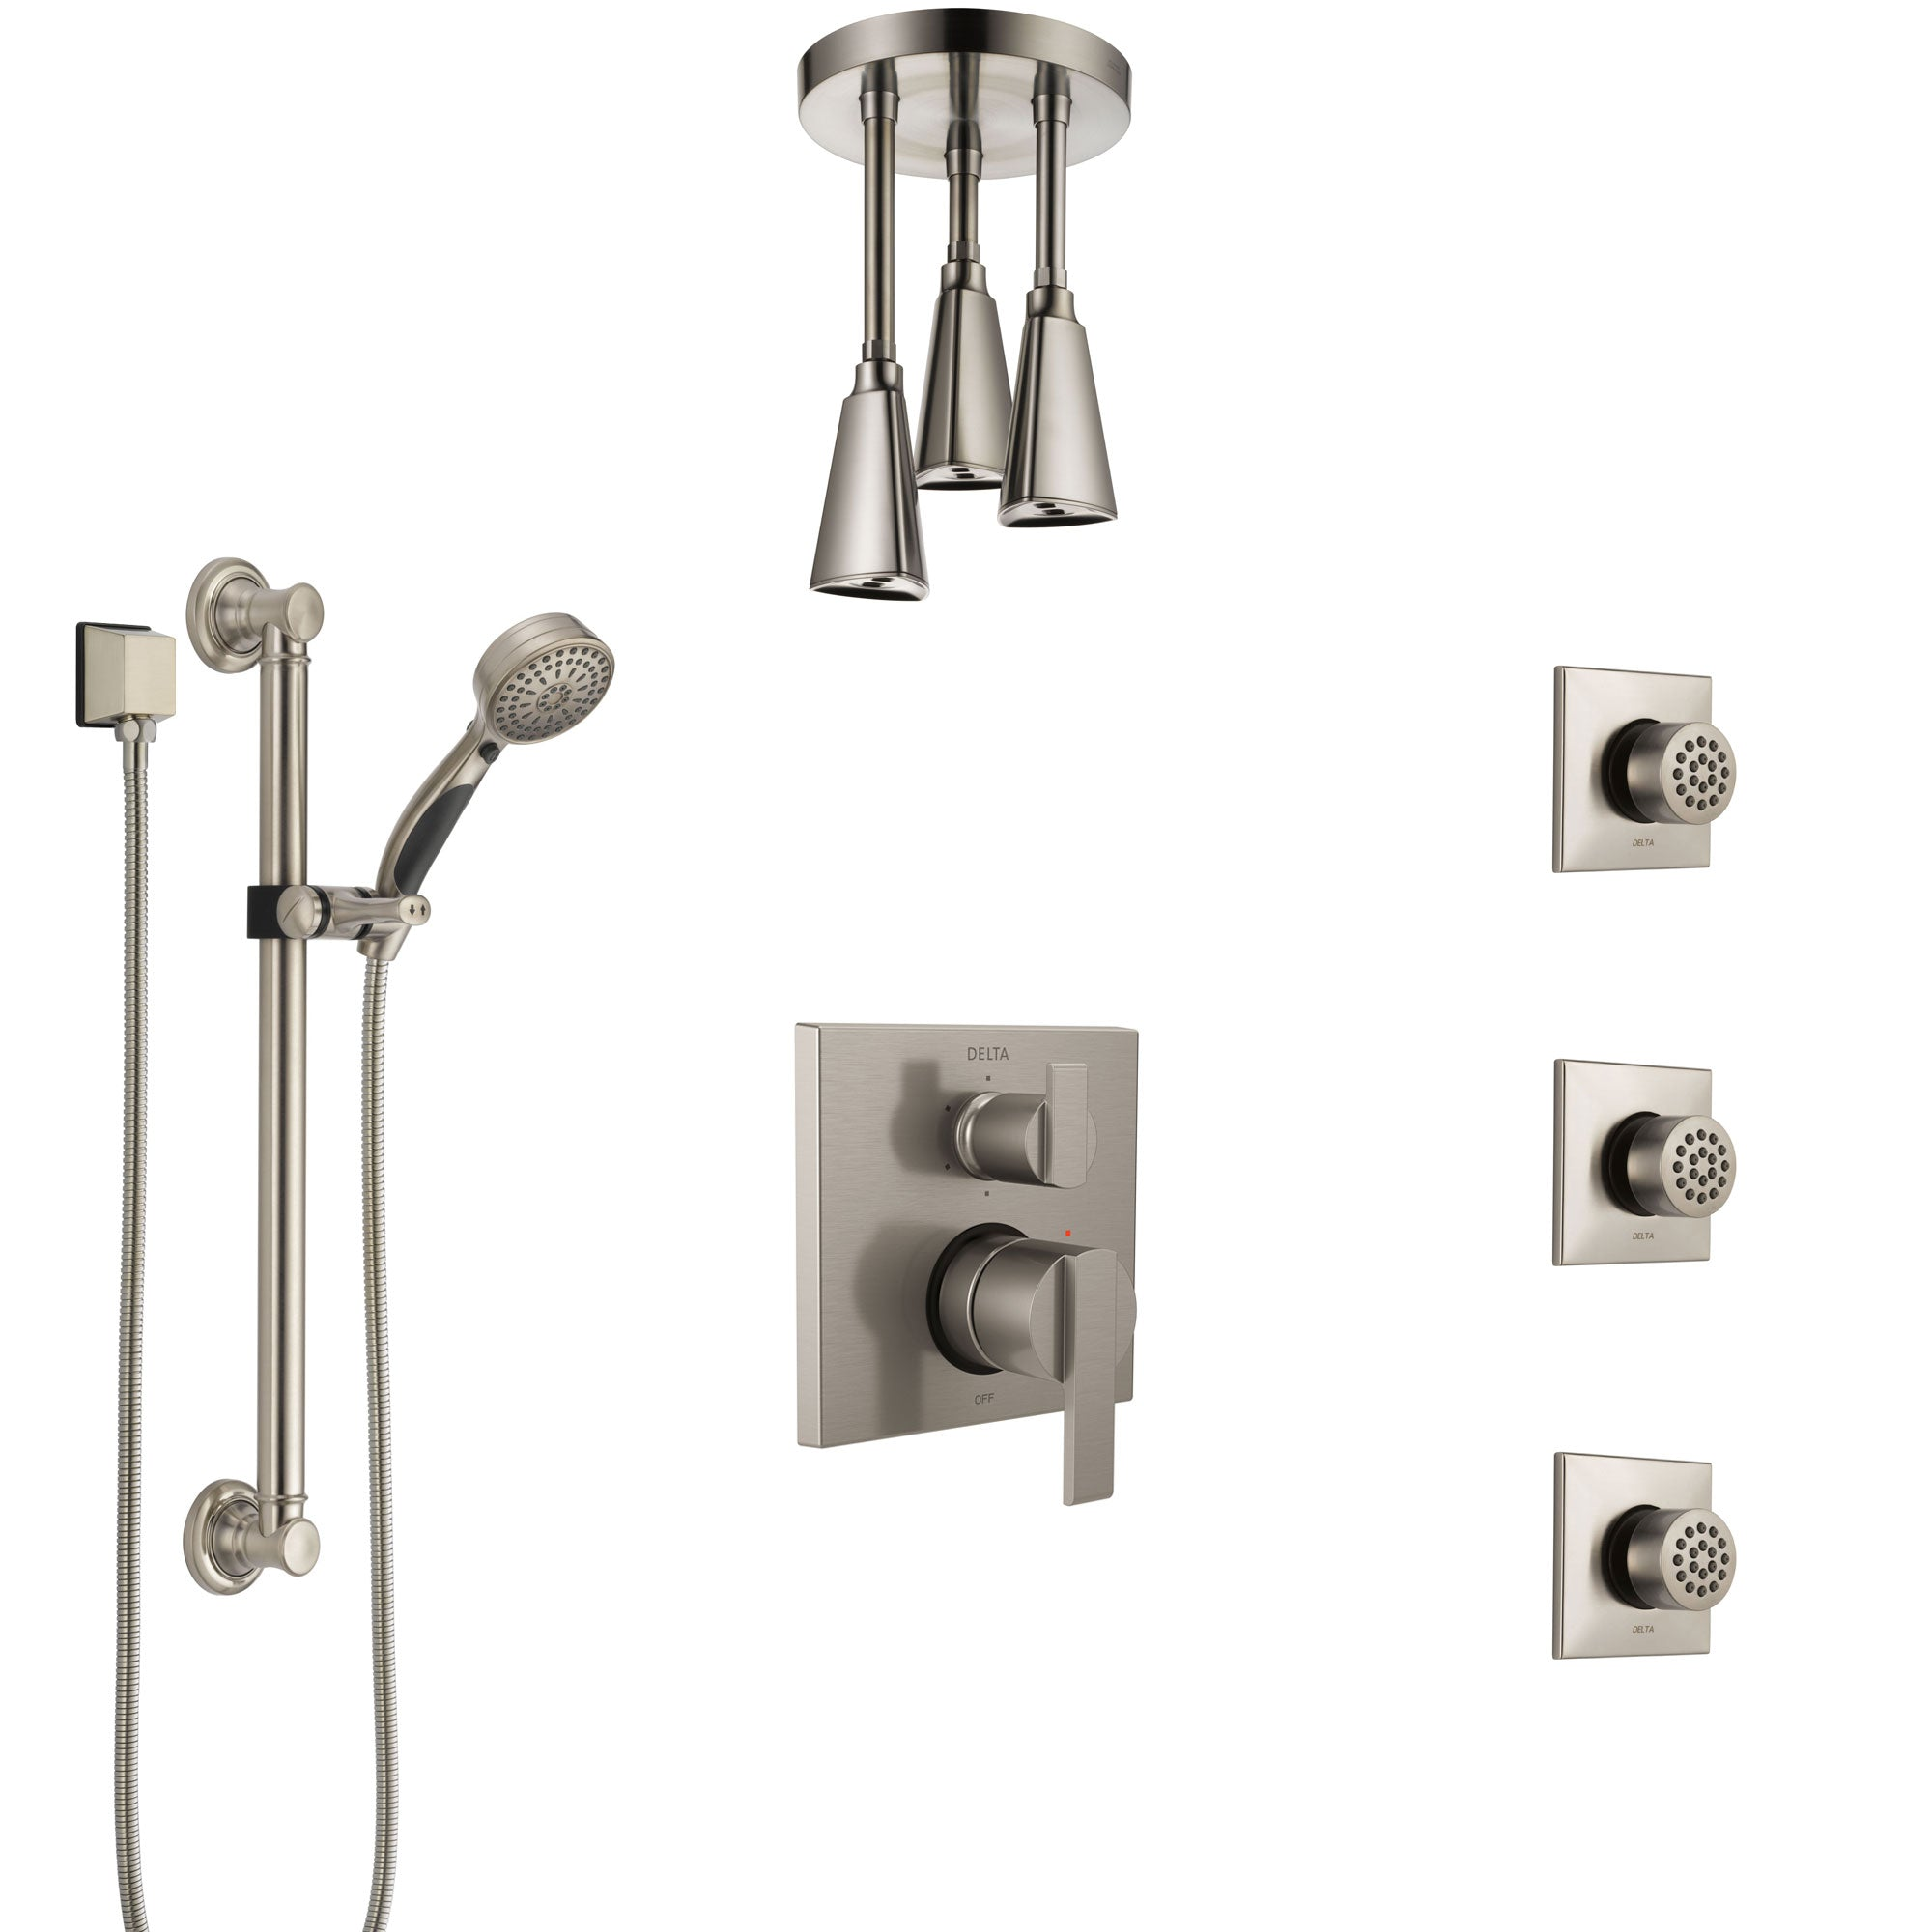 Delta Ara Stainless Steel Finish Integrated Diverter Shower System Control Handle, Ceiling Showerhead, 3 Body Sprays, Grab Bar Hand Spray SS24967SS8